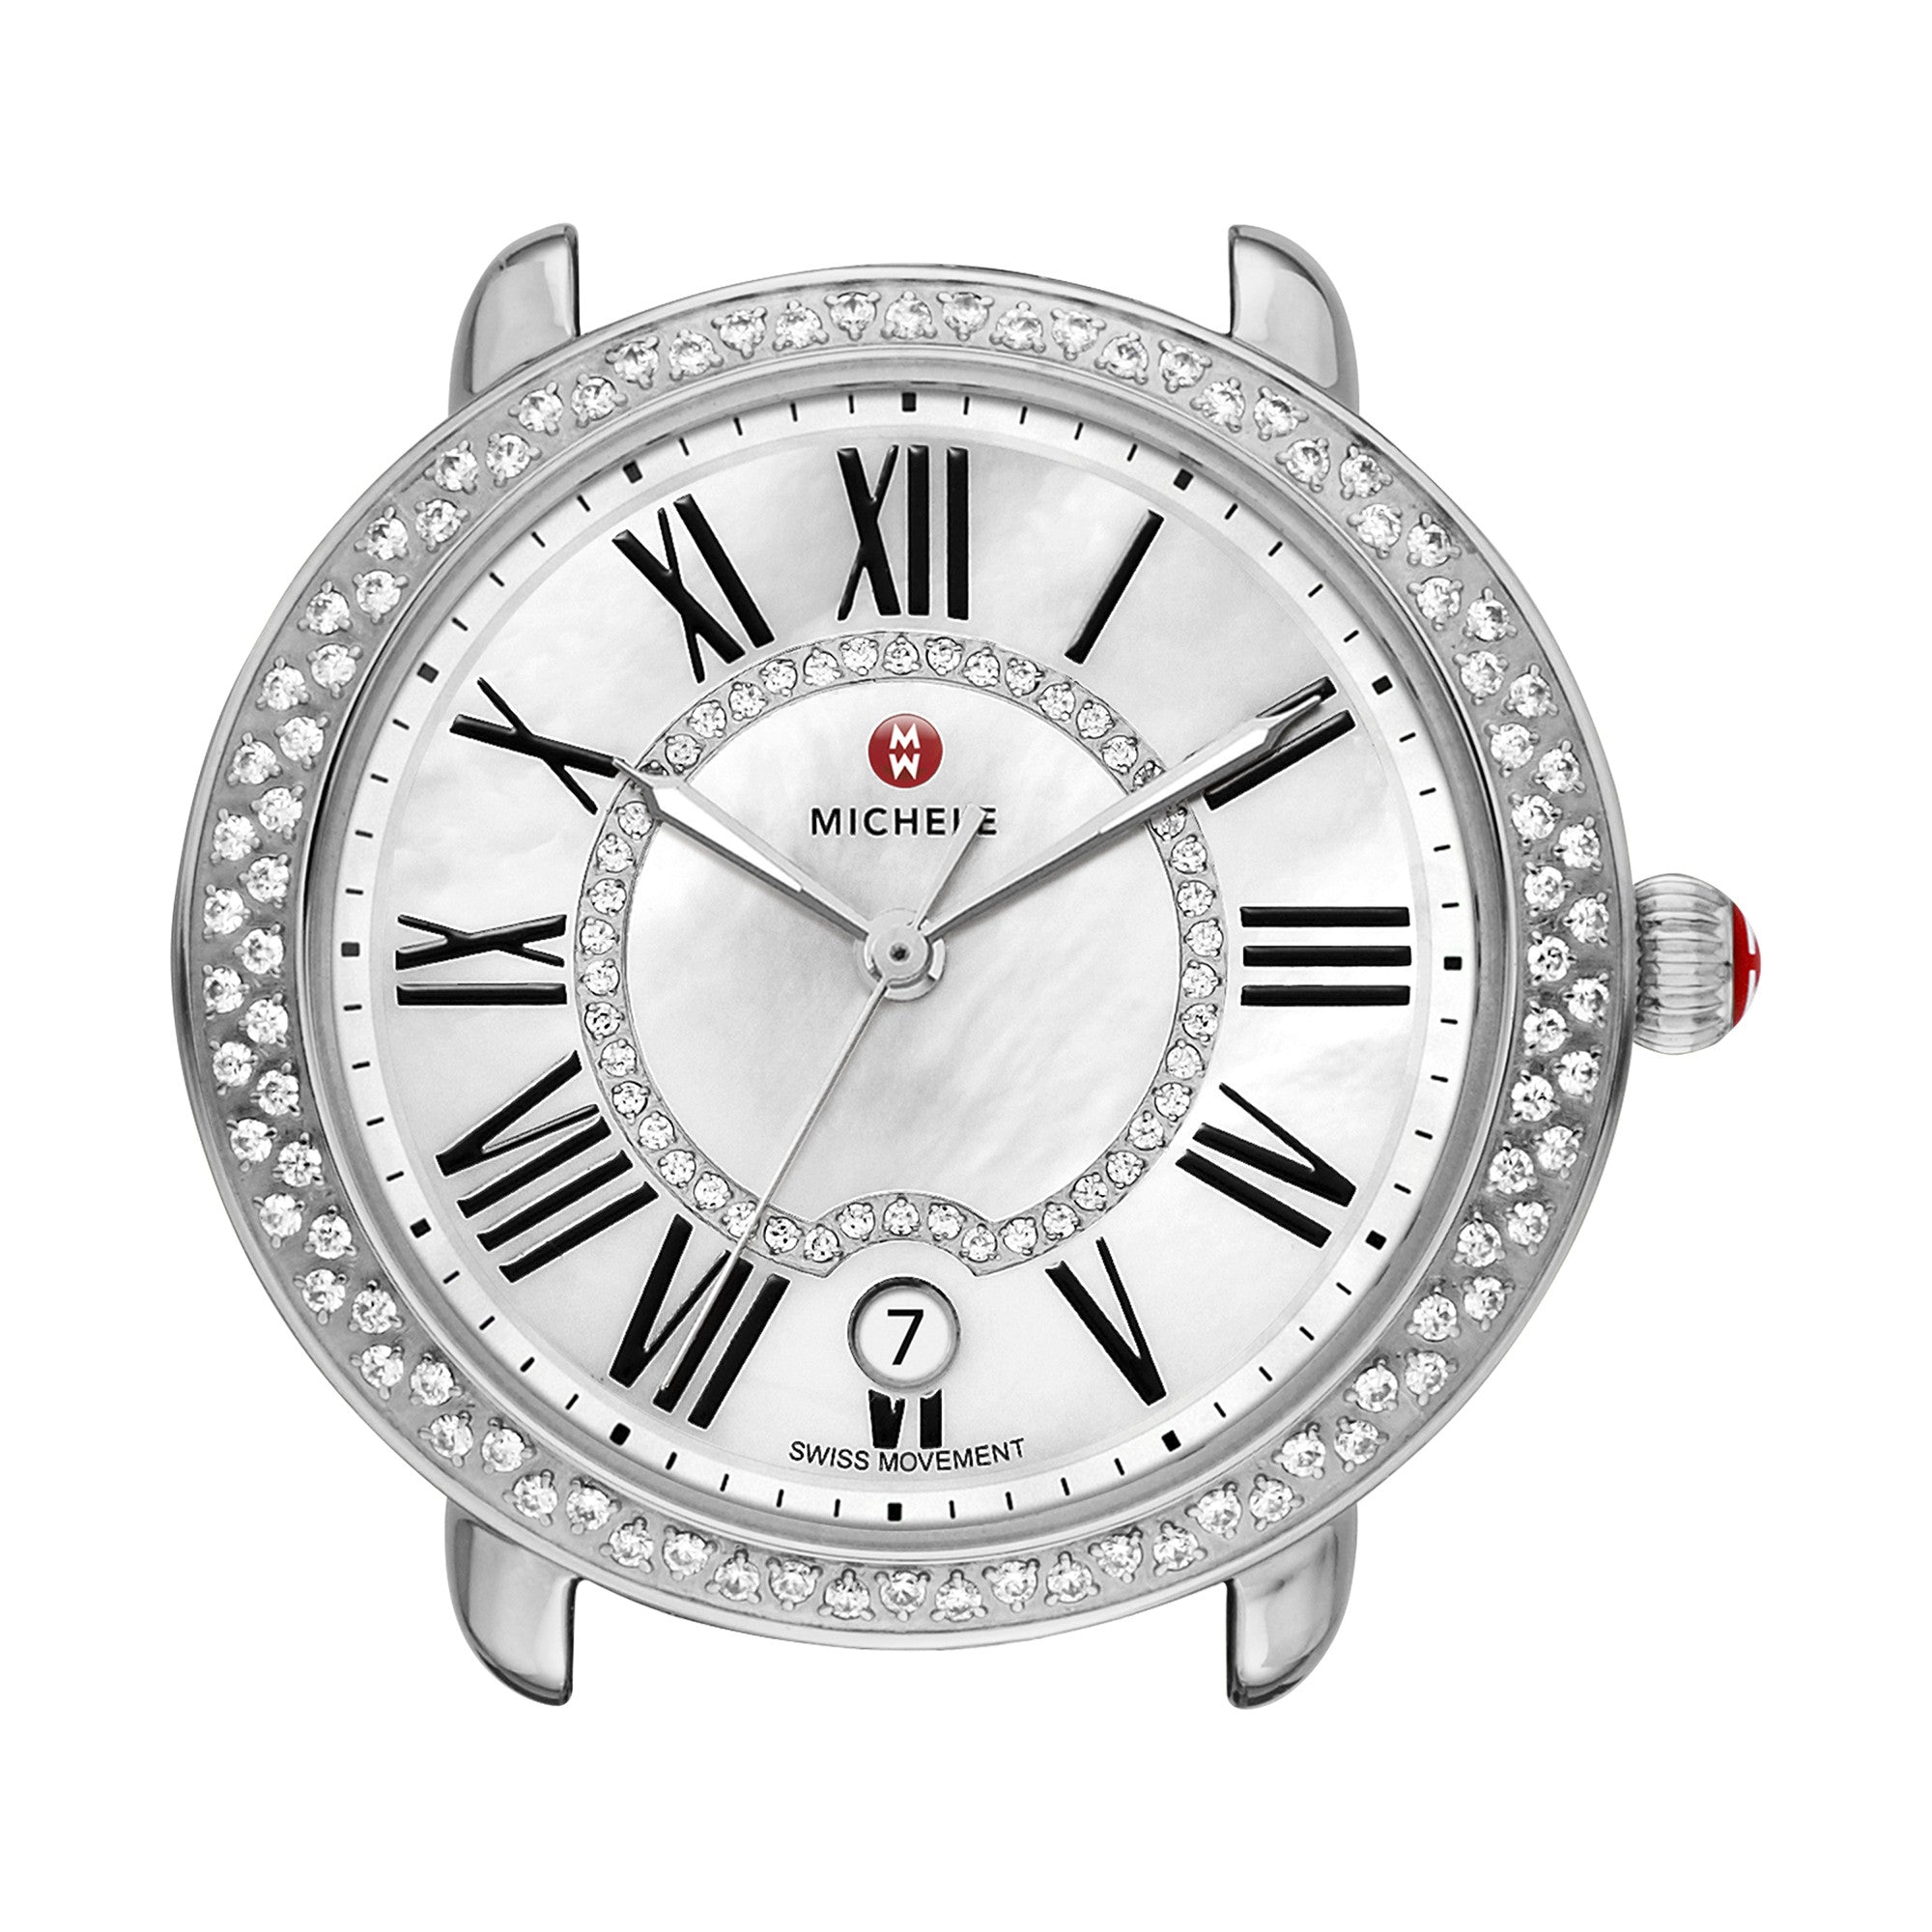 Serein 16 Diamond, Diamond Dial Watch Head